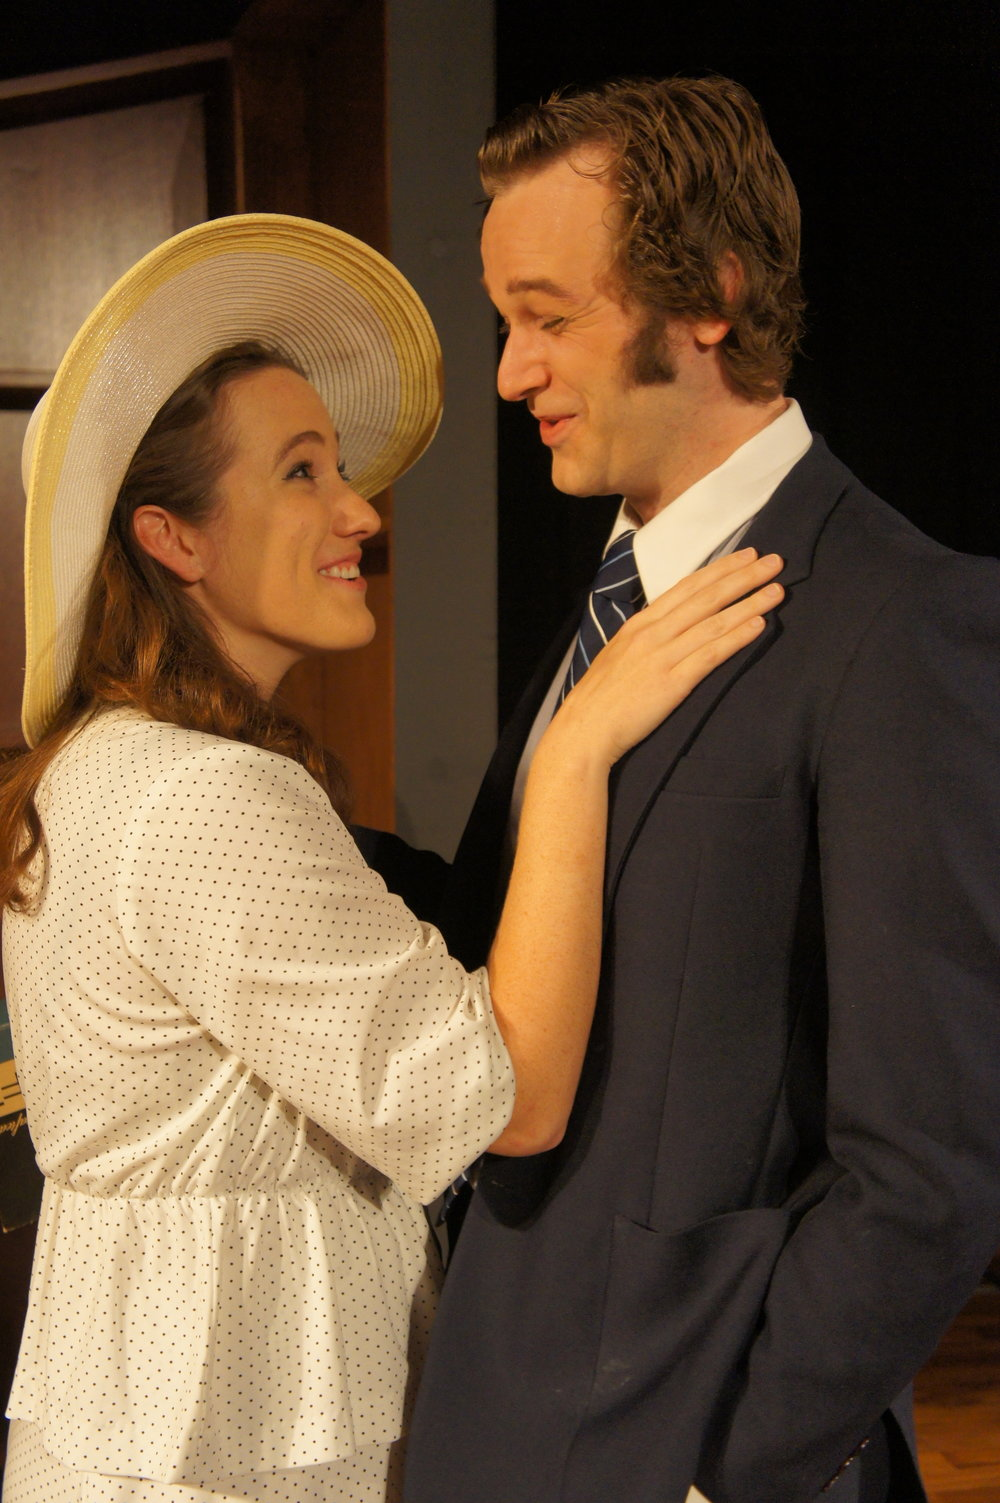 Caroline Cushing (Bryn Curry) and David Frost (Sean Lundberg) on the beach